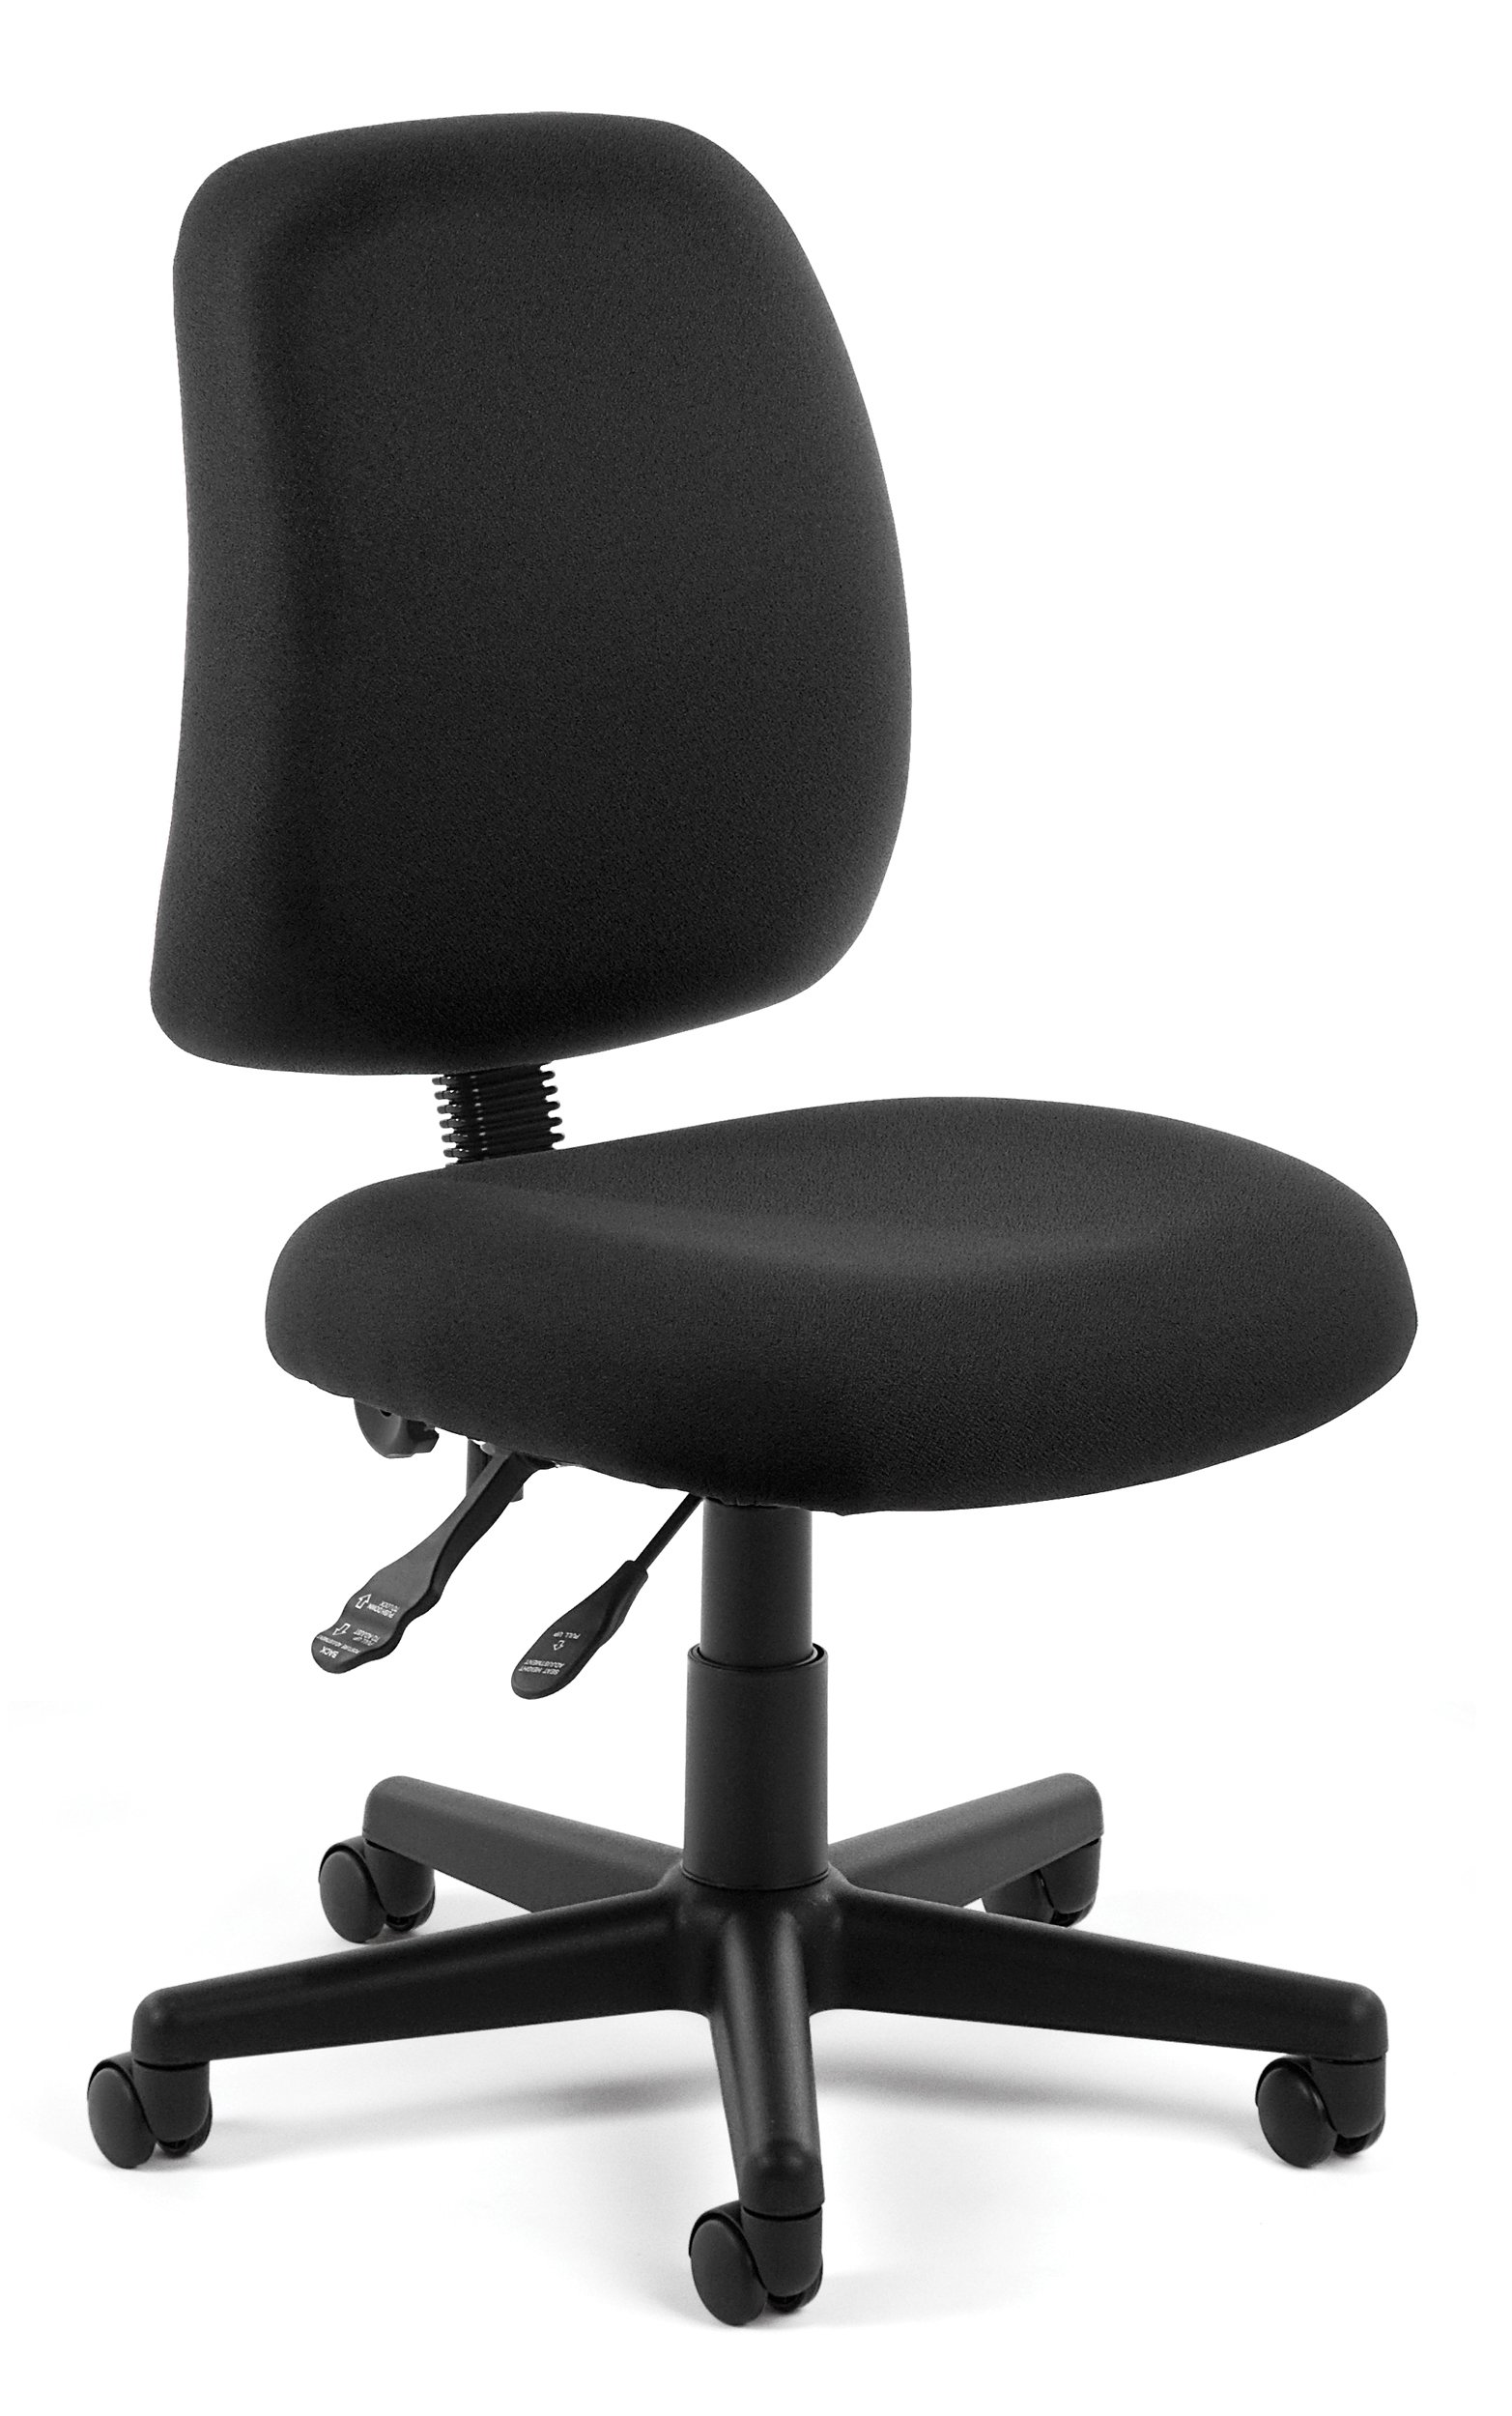 OFM Posture Series Armless Mid Back Task Chair - Stain Resistant Fabric Swivel Chair, Black (118-2)